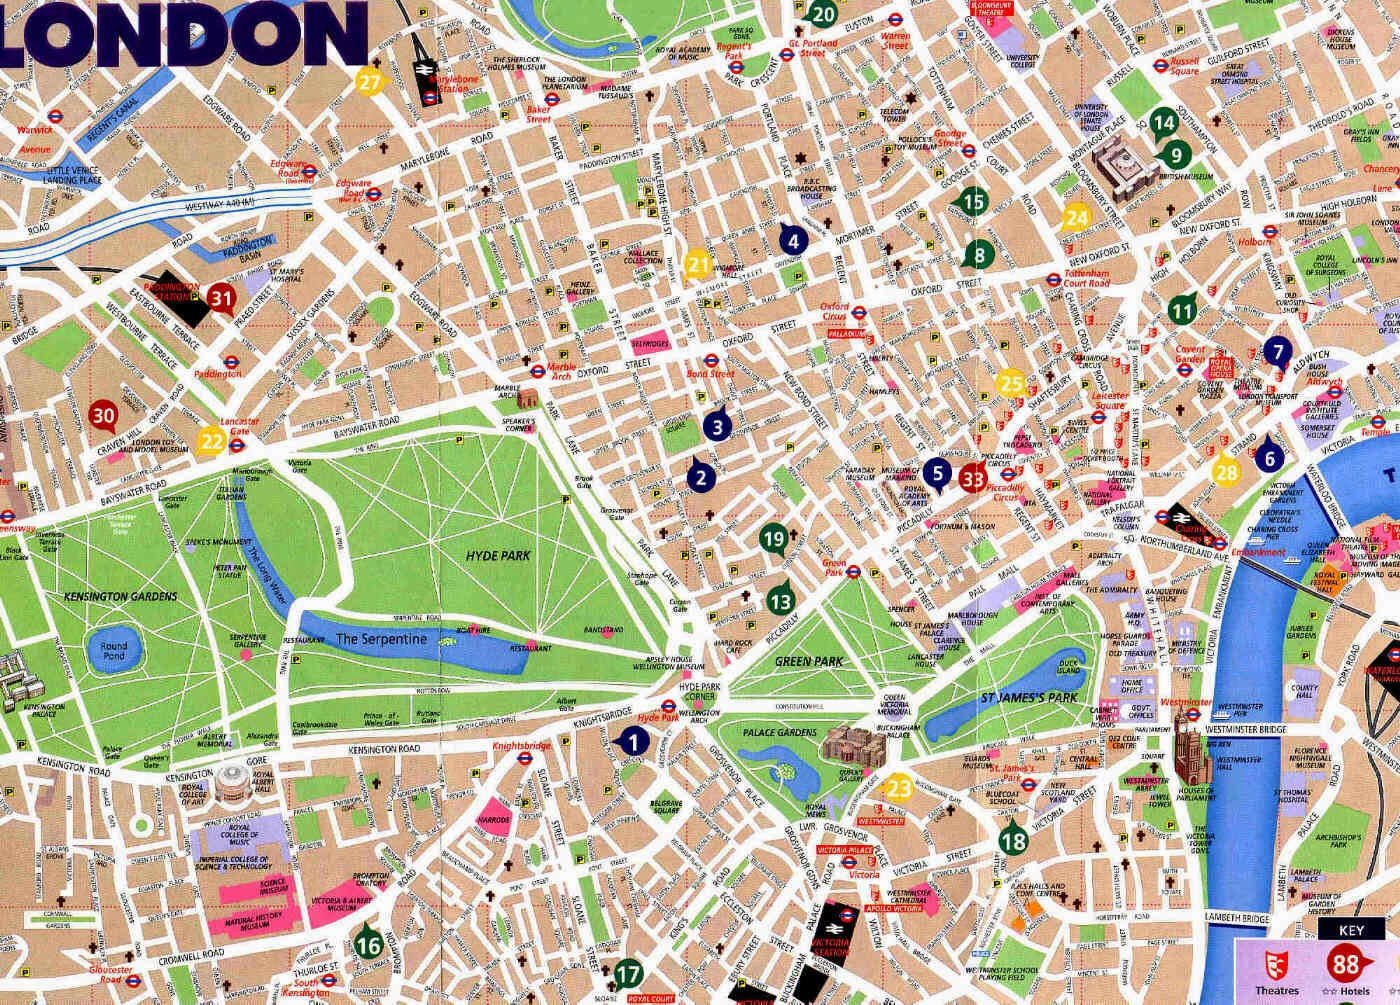 April 2015 Free Printable Maps – Tourist Maps of London